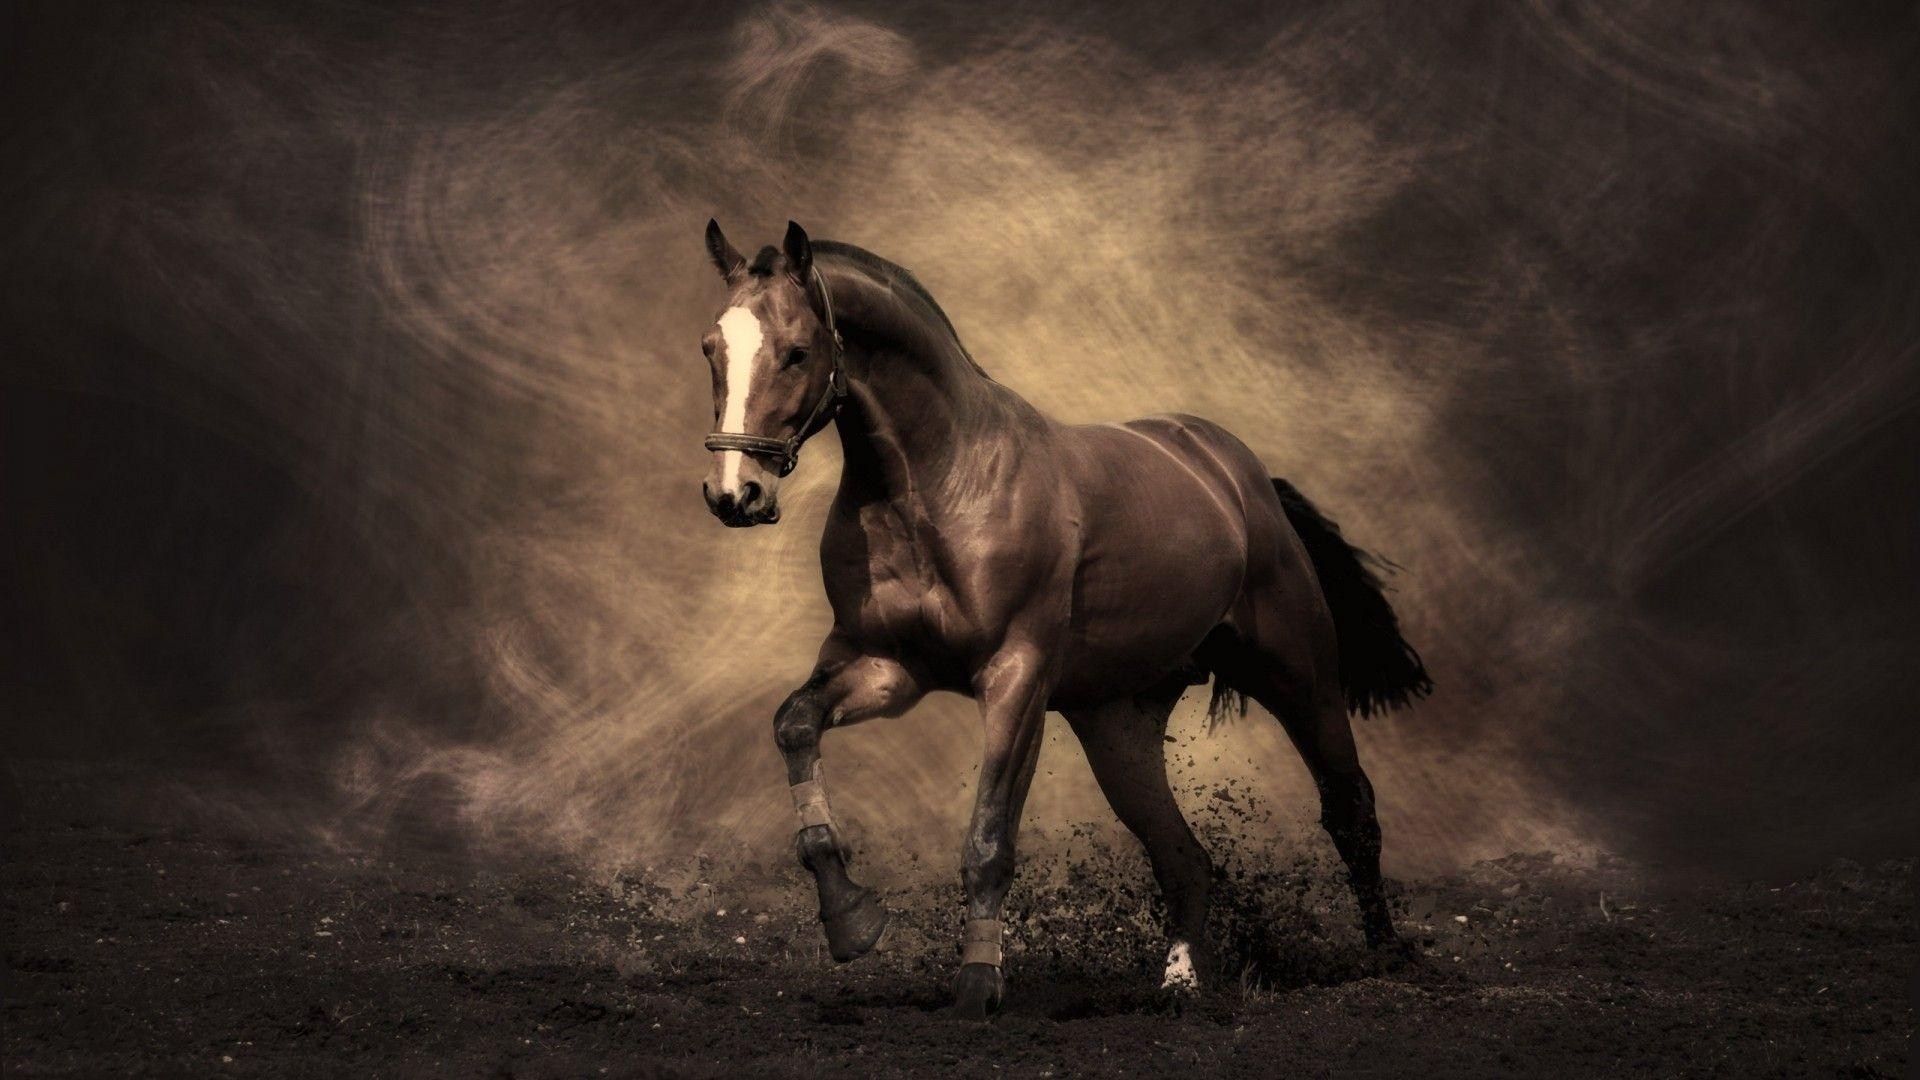 Wallpapers Horse Wallpaper Cave